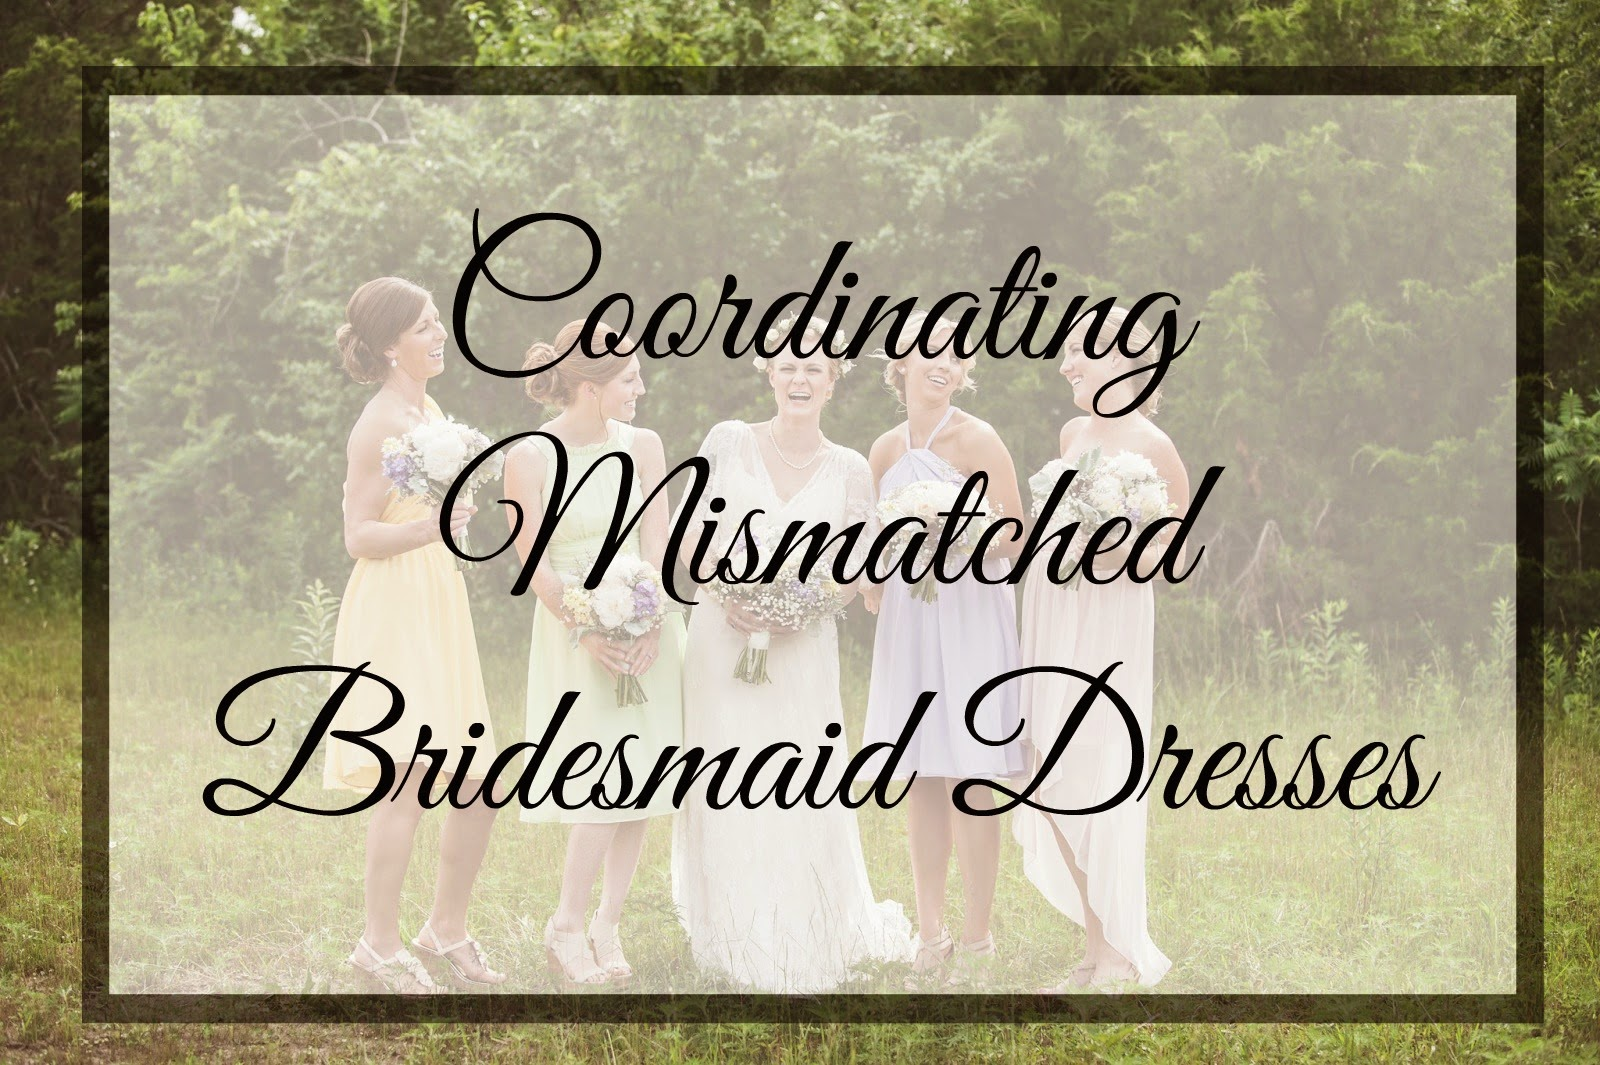 Coordinating Mismatched Bridesmaid Dresses